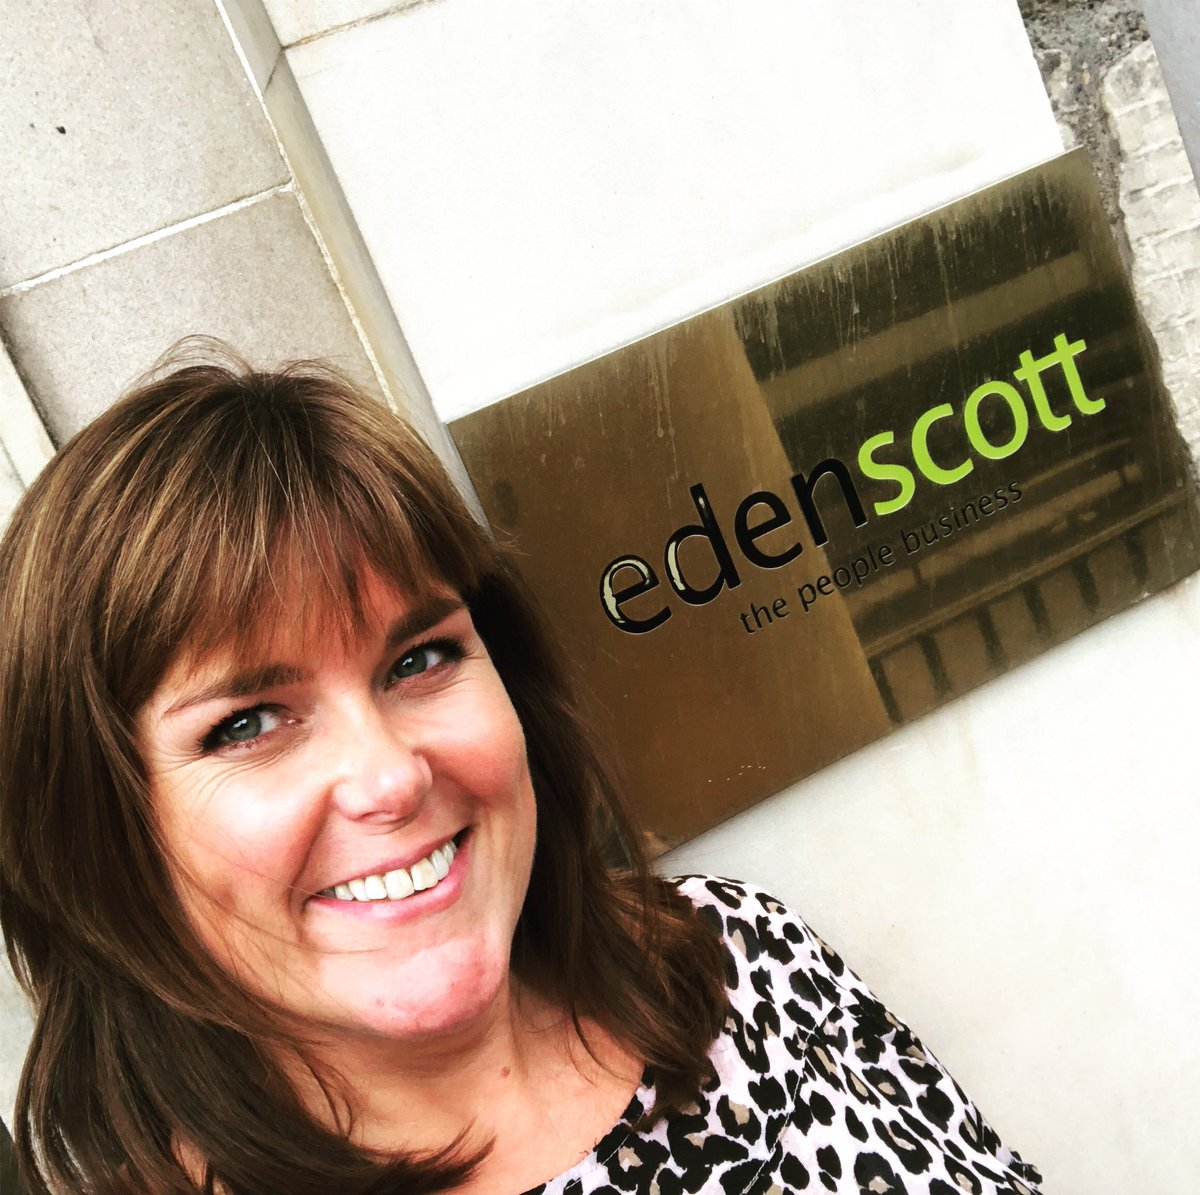 First day back @talent_spark! Great to be working with the @EdenScottLtd #StartUp #talent specialists helping growing businesses secure the skills and expertise they need. Looking to grow your team? Let's talk... #tech #data #medtech #biotech #digital<br>http://pic.twitter.com/yyUVXPfCoB